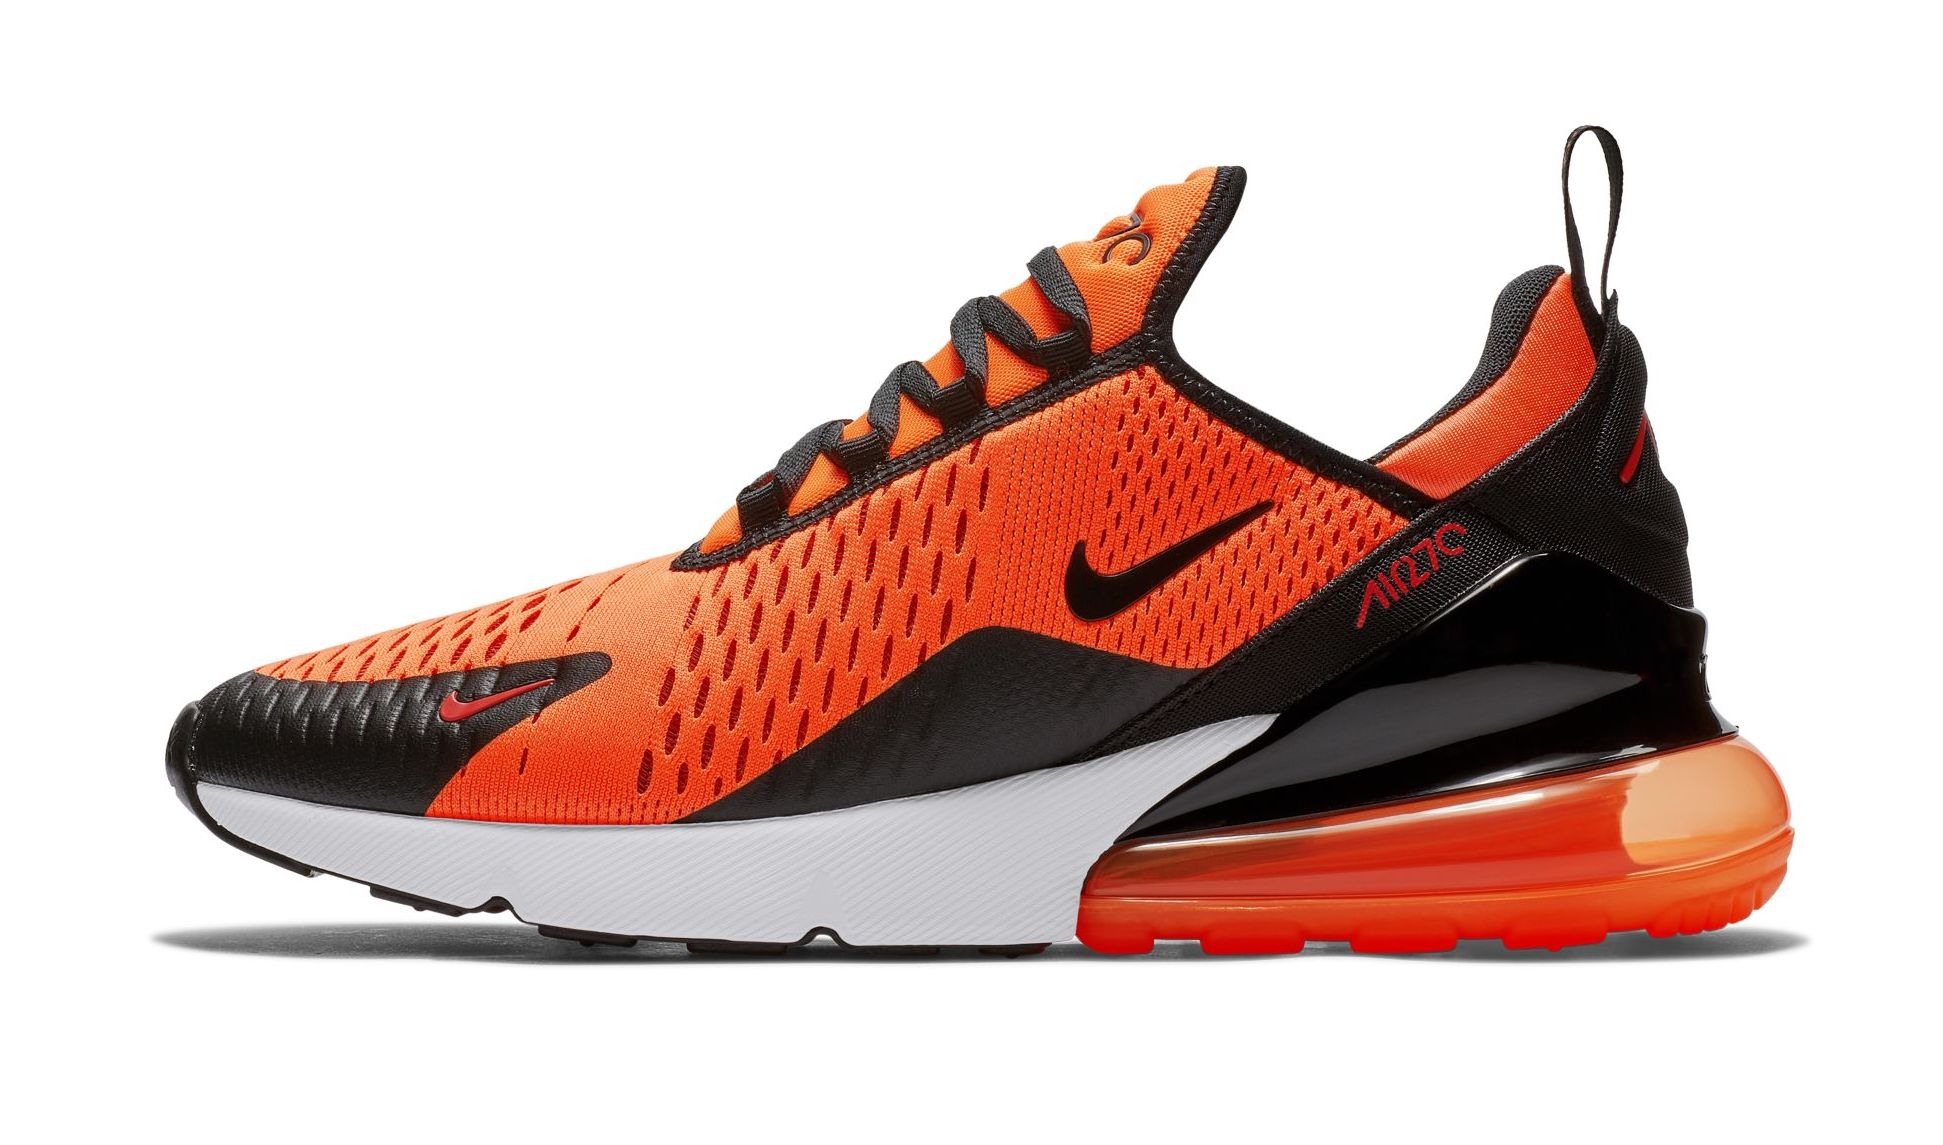 info for e7be1 f6ded Official Look At The Nike Air Max 270 Total Orange Black ...